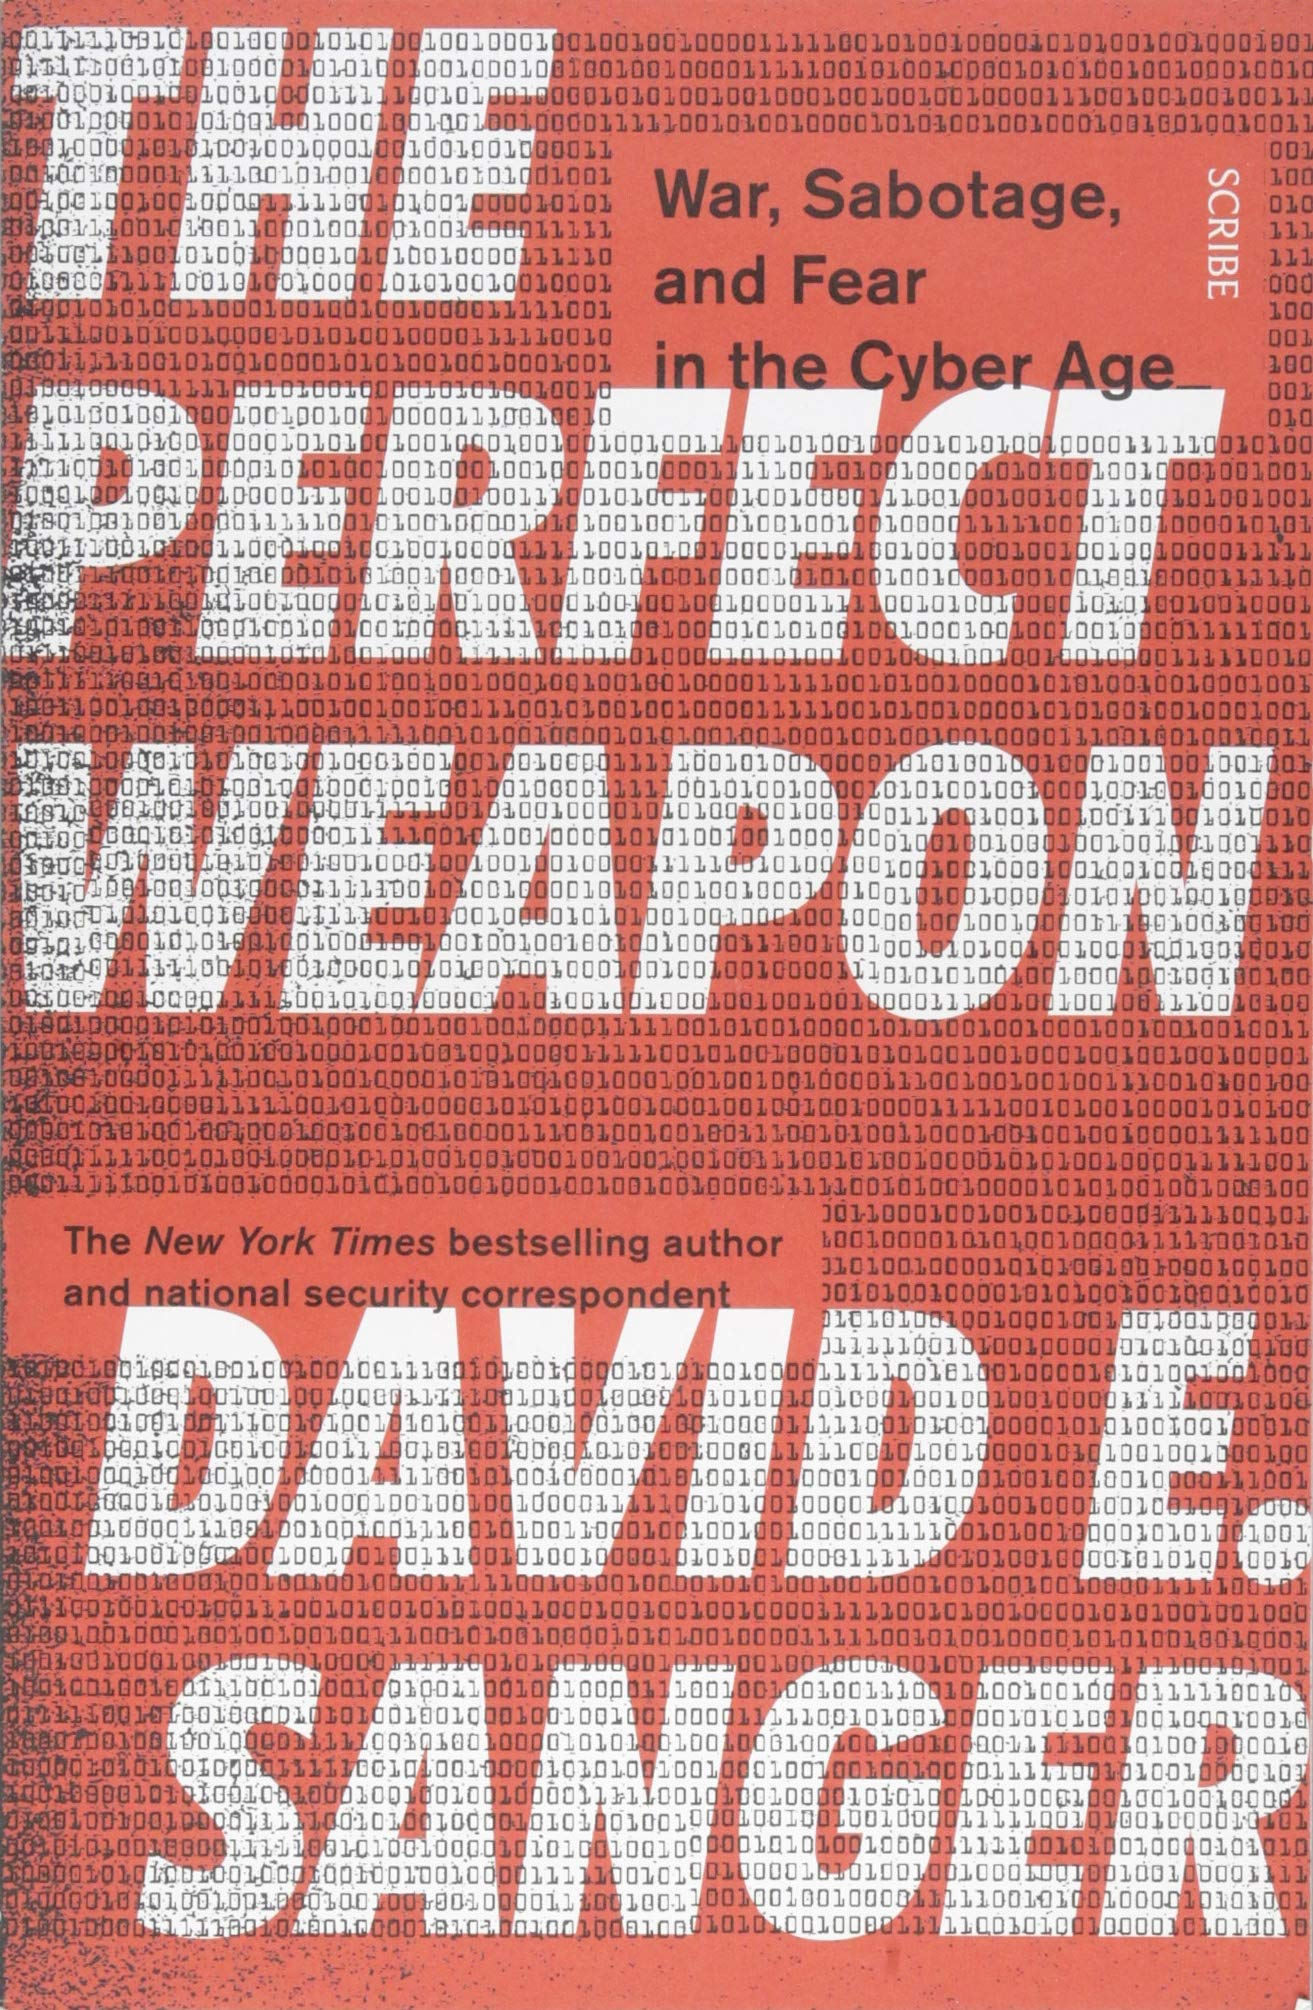 The Perfect Weapon: war sabotage and fear in the cyber age_